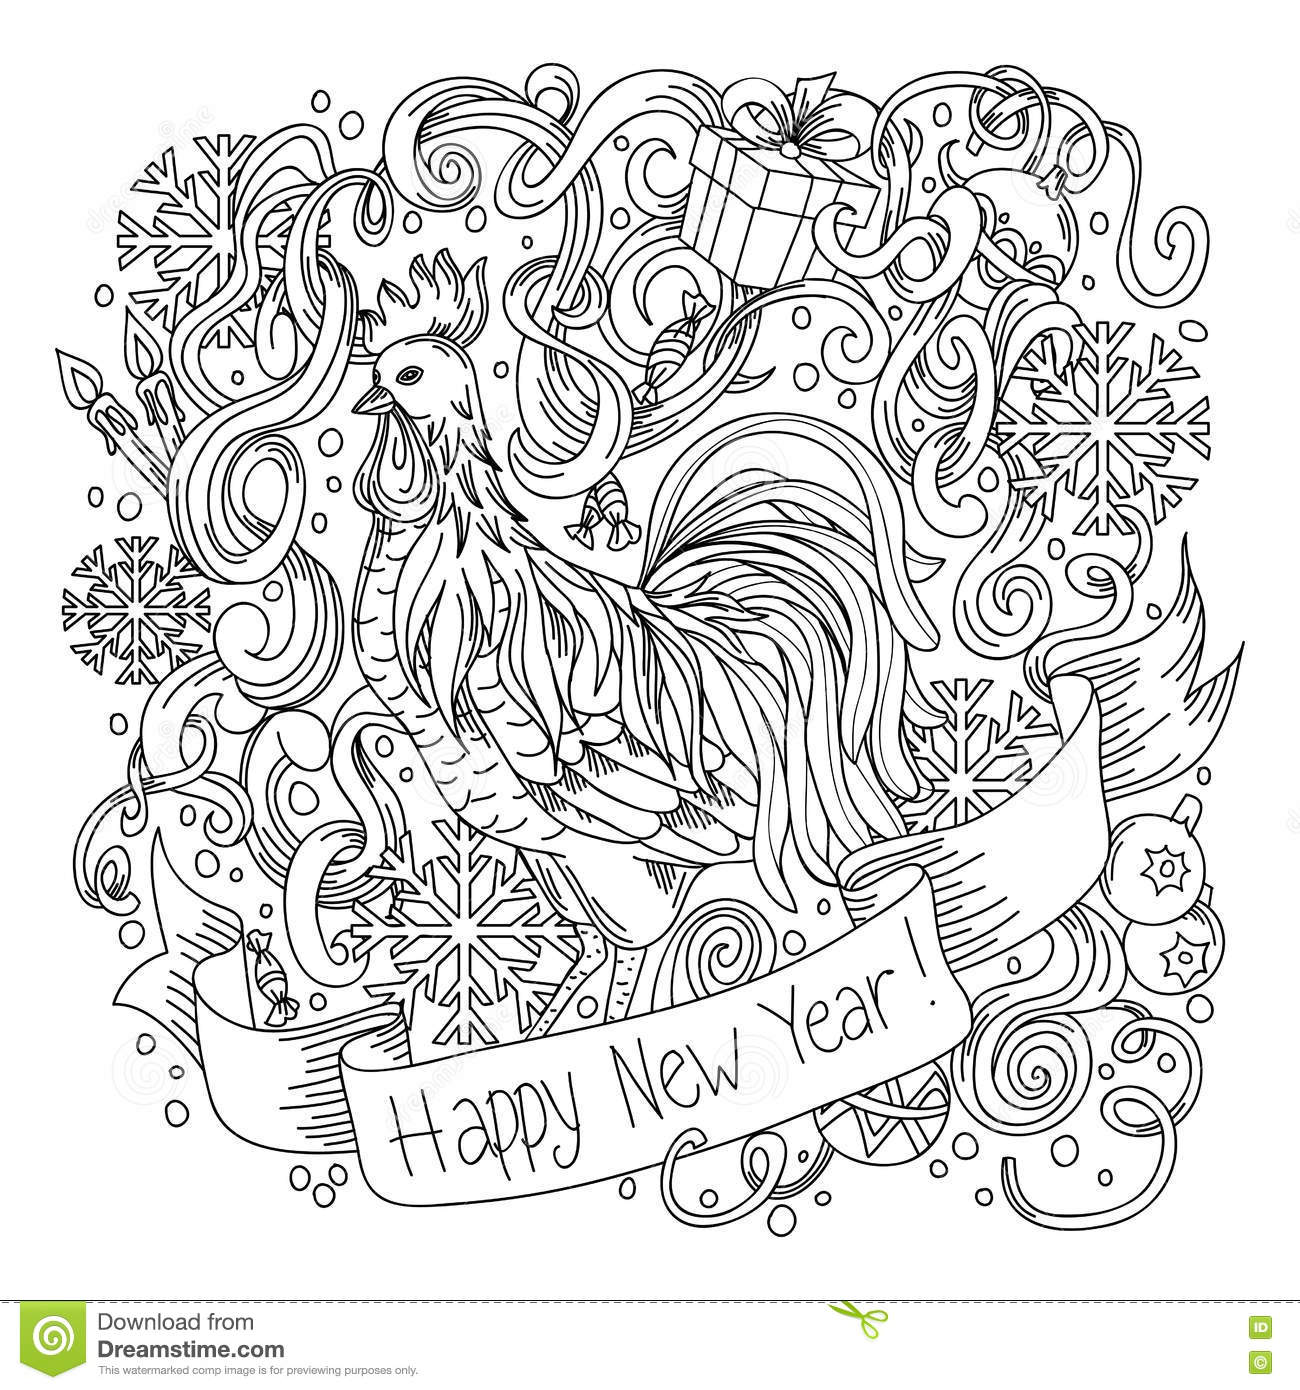 Symbol of chinese new year rooster sketch cartoon cute hand drawn symbol of chinese new year rooster sketch cartoon cute hand drawn doodle happy new year illustration biocorpaavc